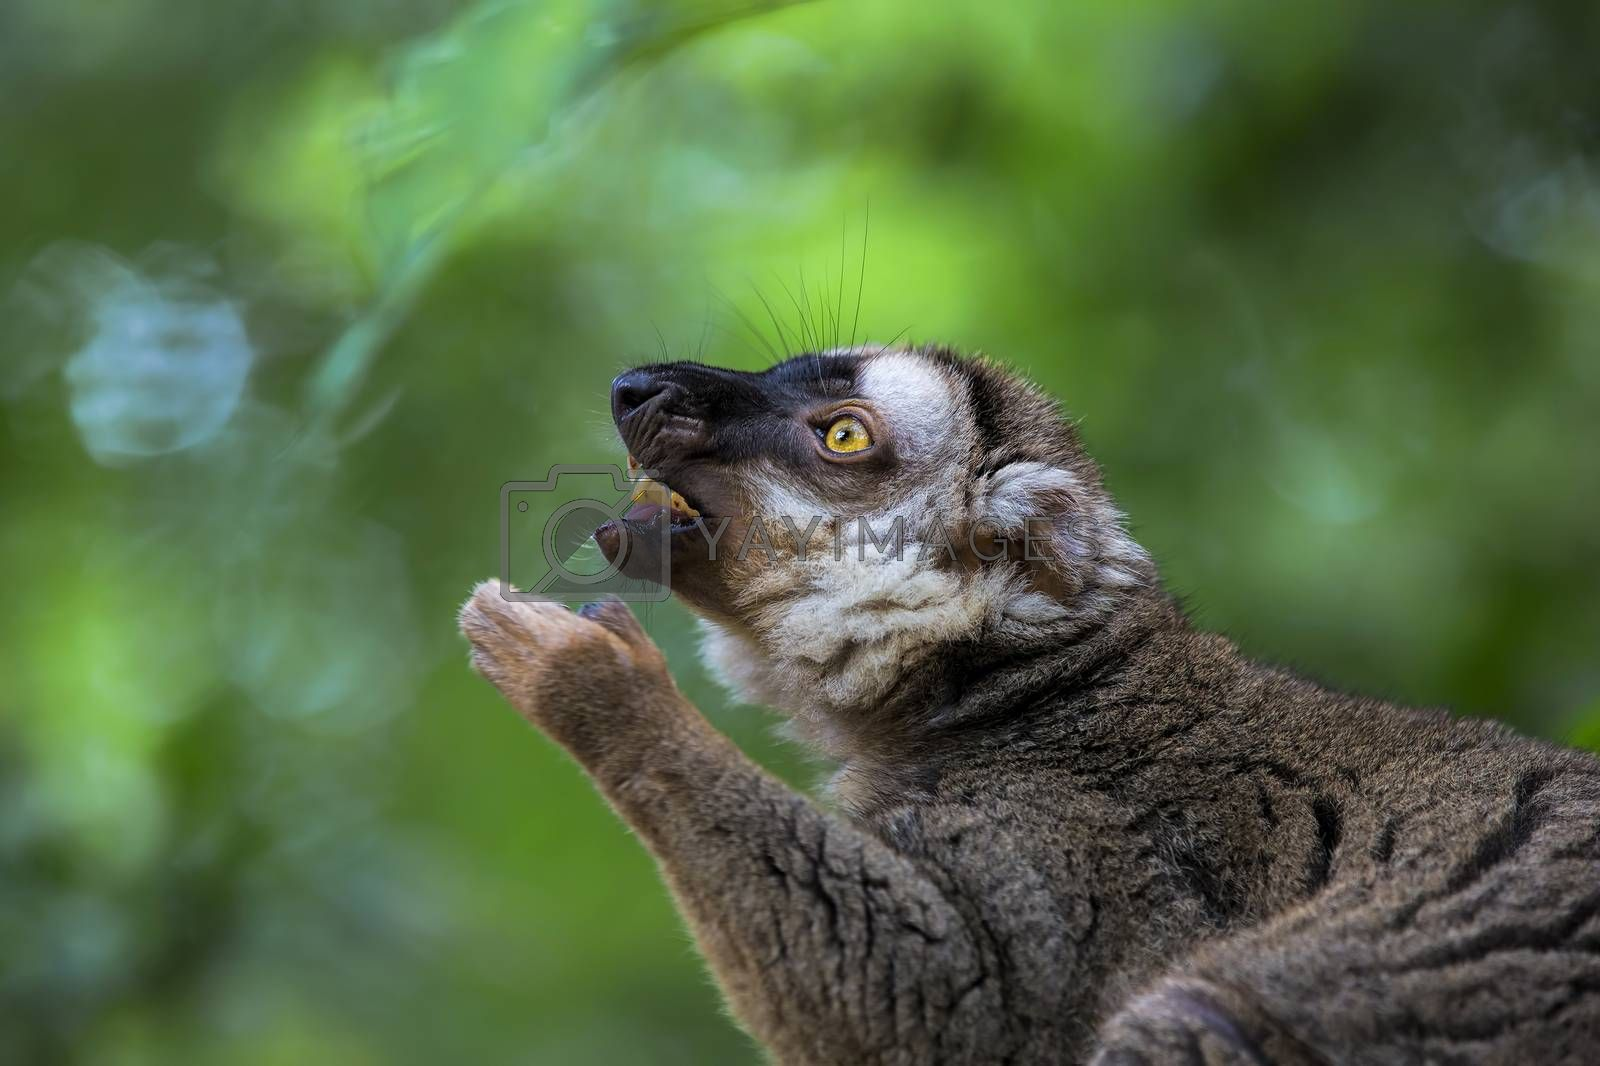 A ring-tailed lemur in the forest of Madagascar